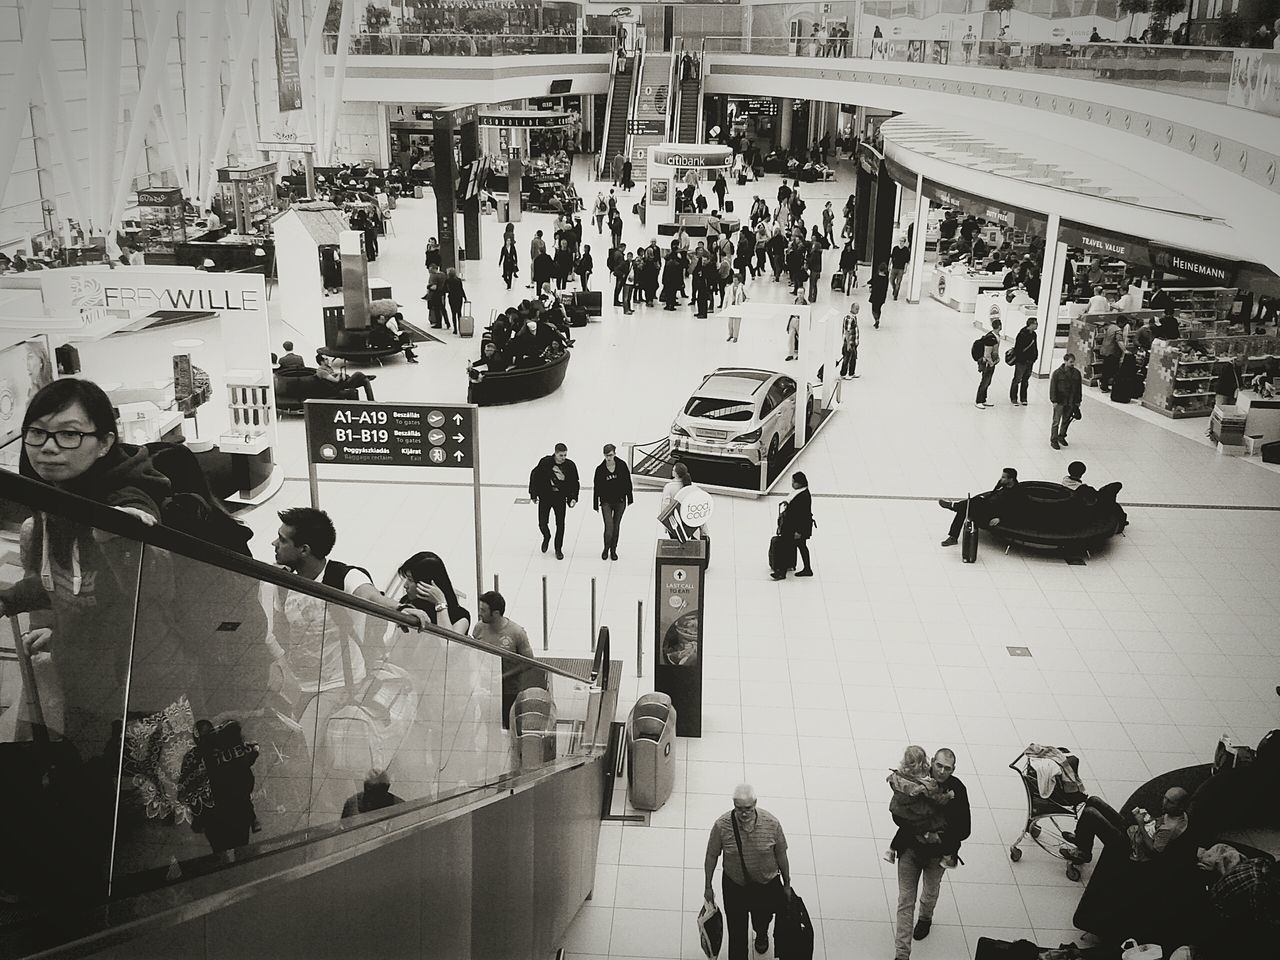 Budapest, Hungary Airport People Travellers Black & White In The Terminal